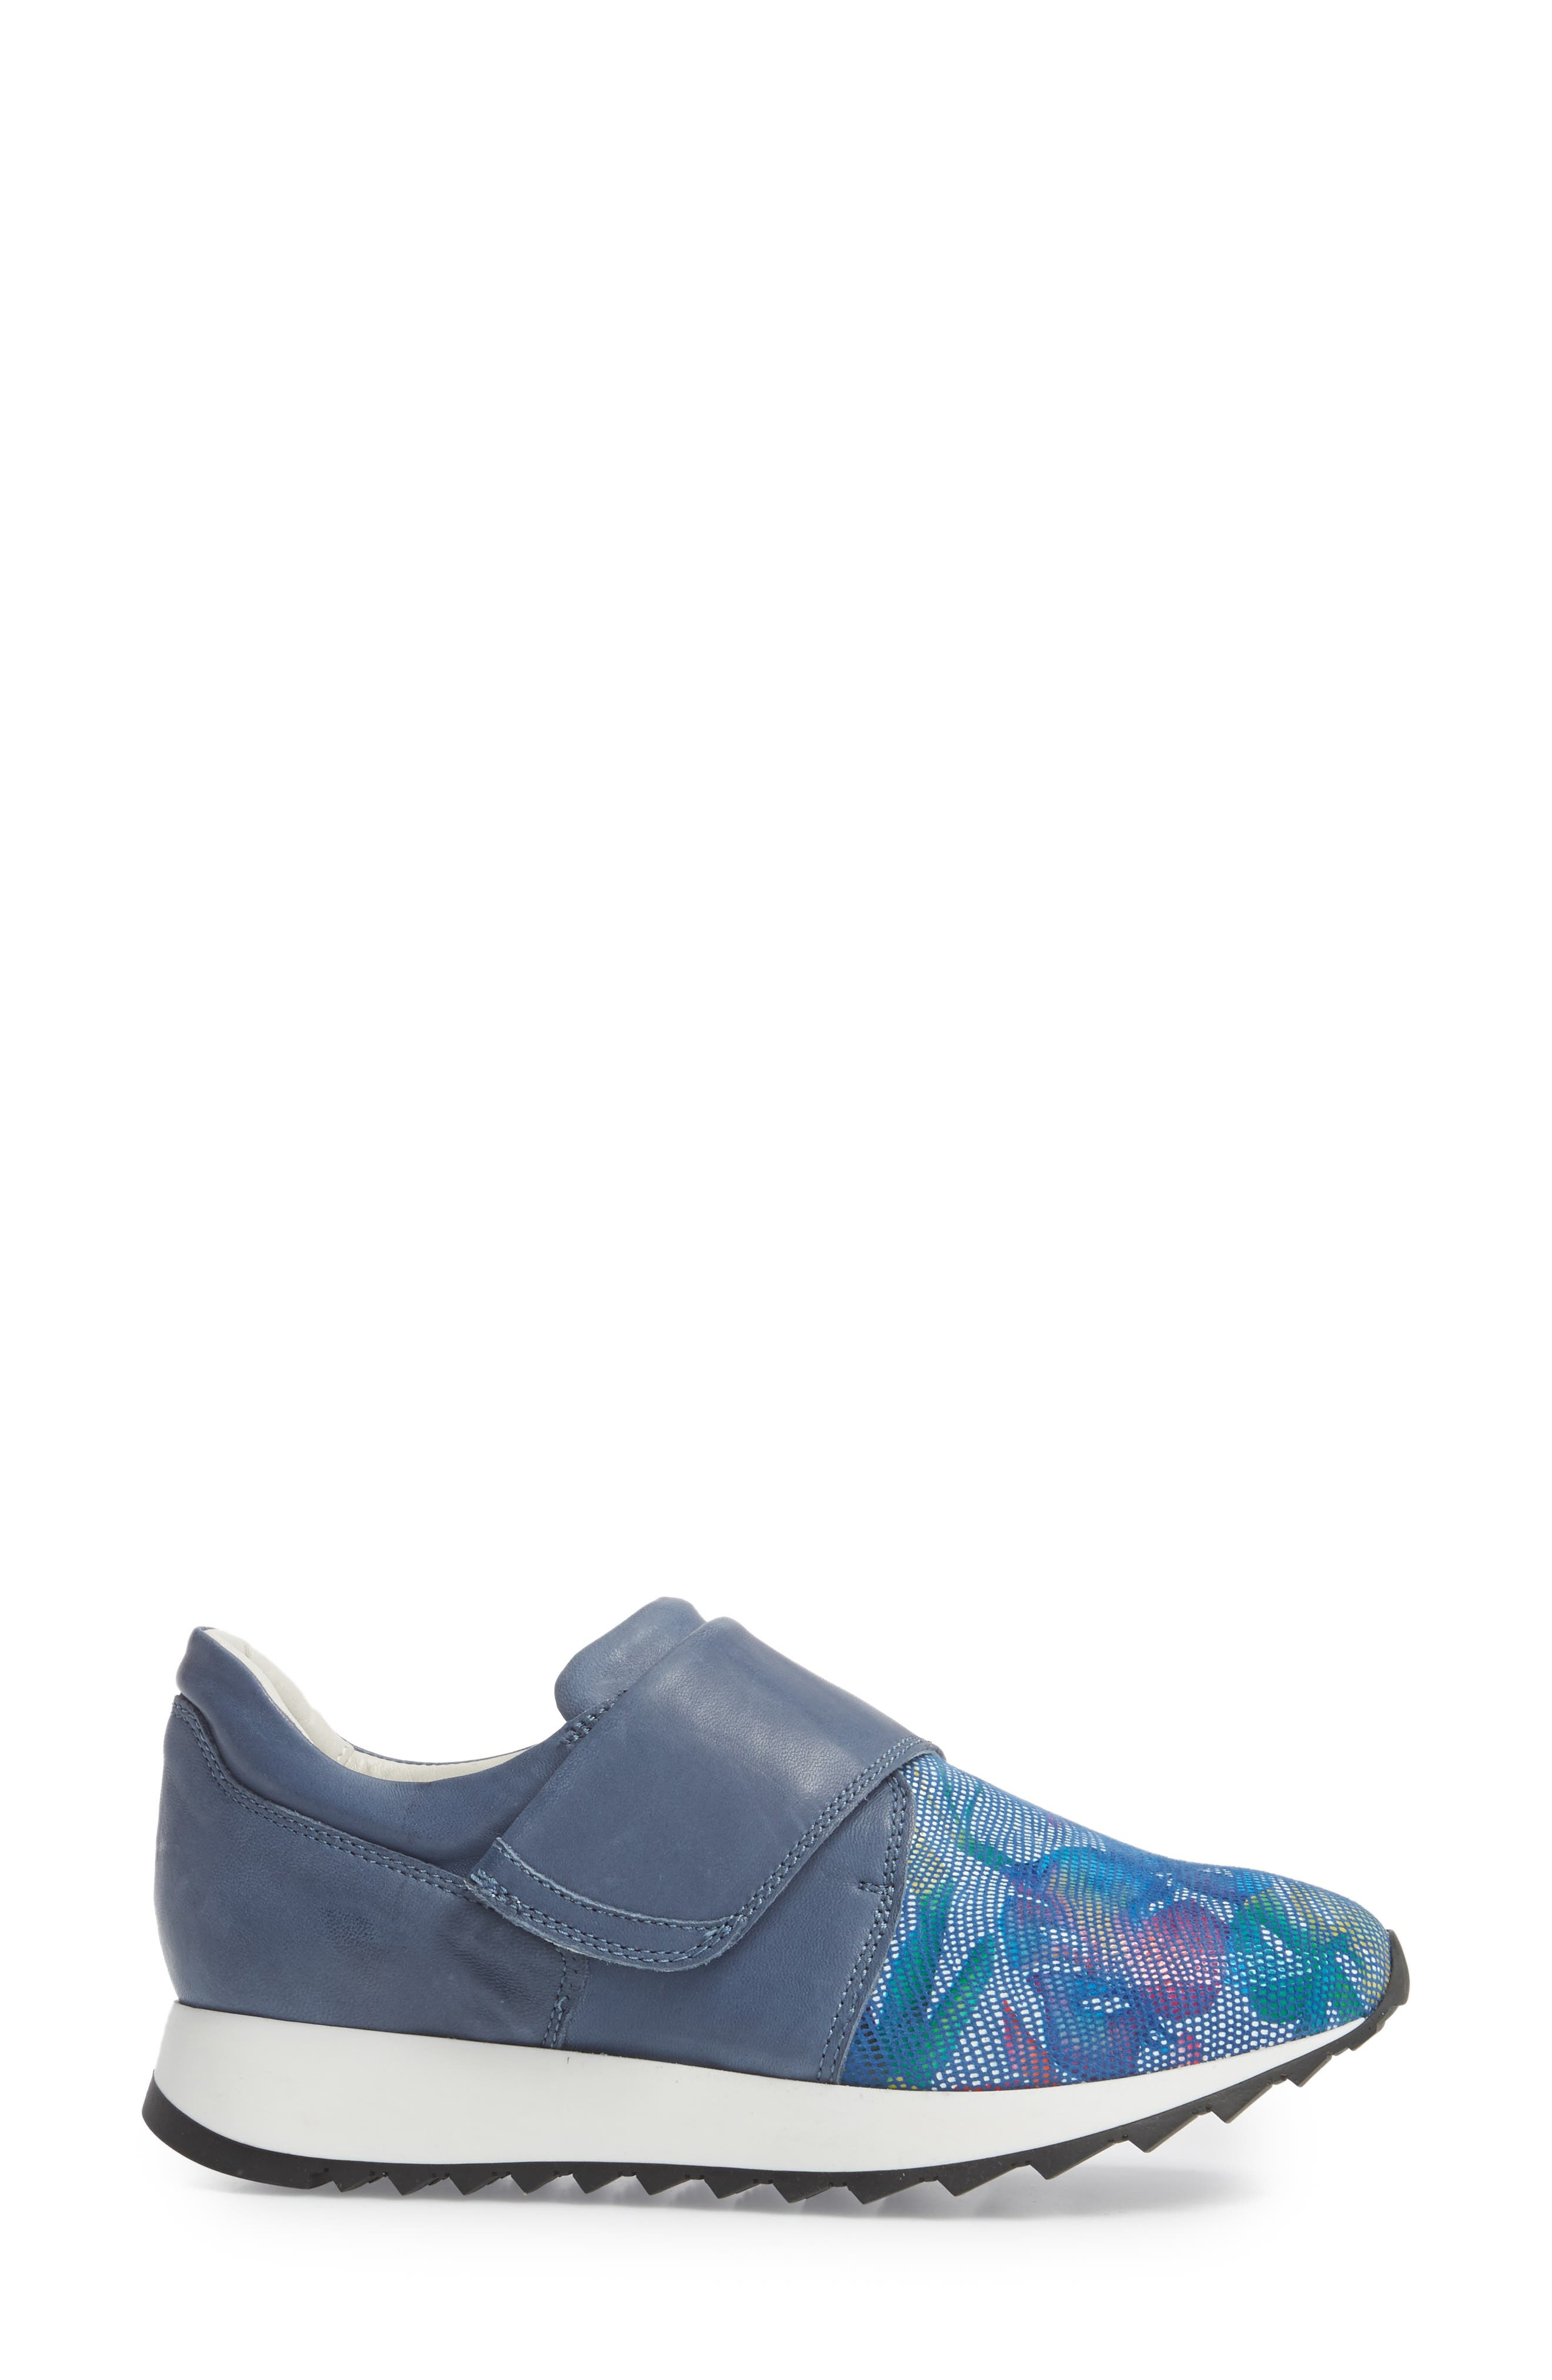 Danza Wedge Sneaker,                             Alternate thumbnail 3, color,                             Royal Leather